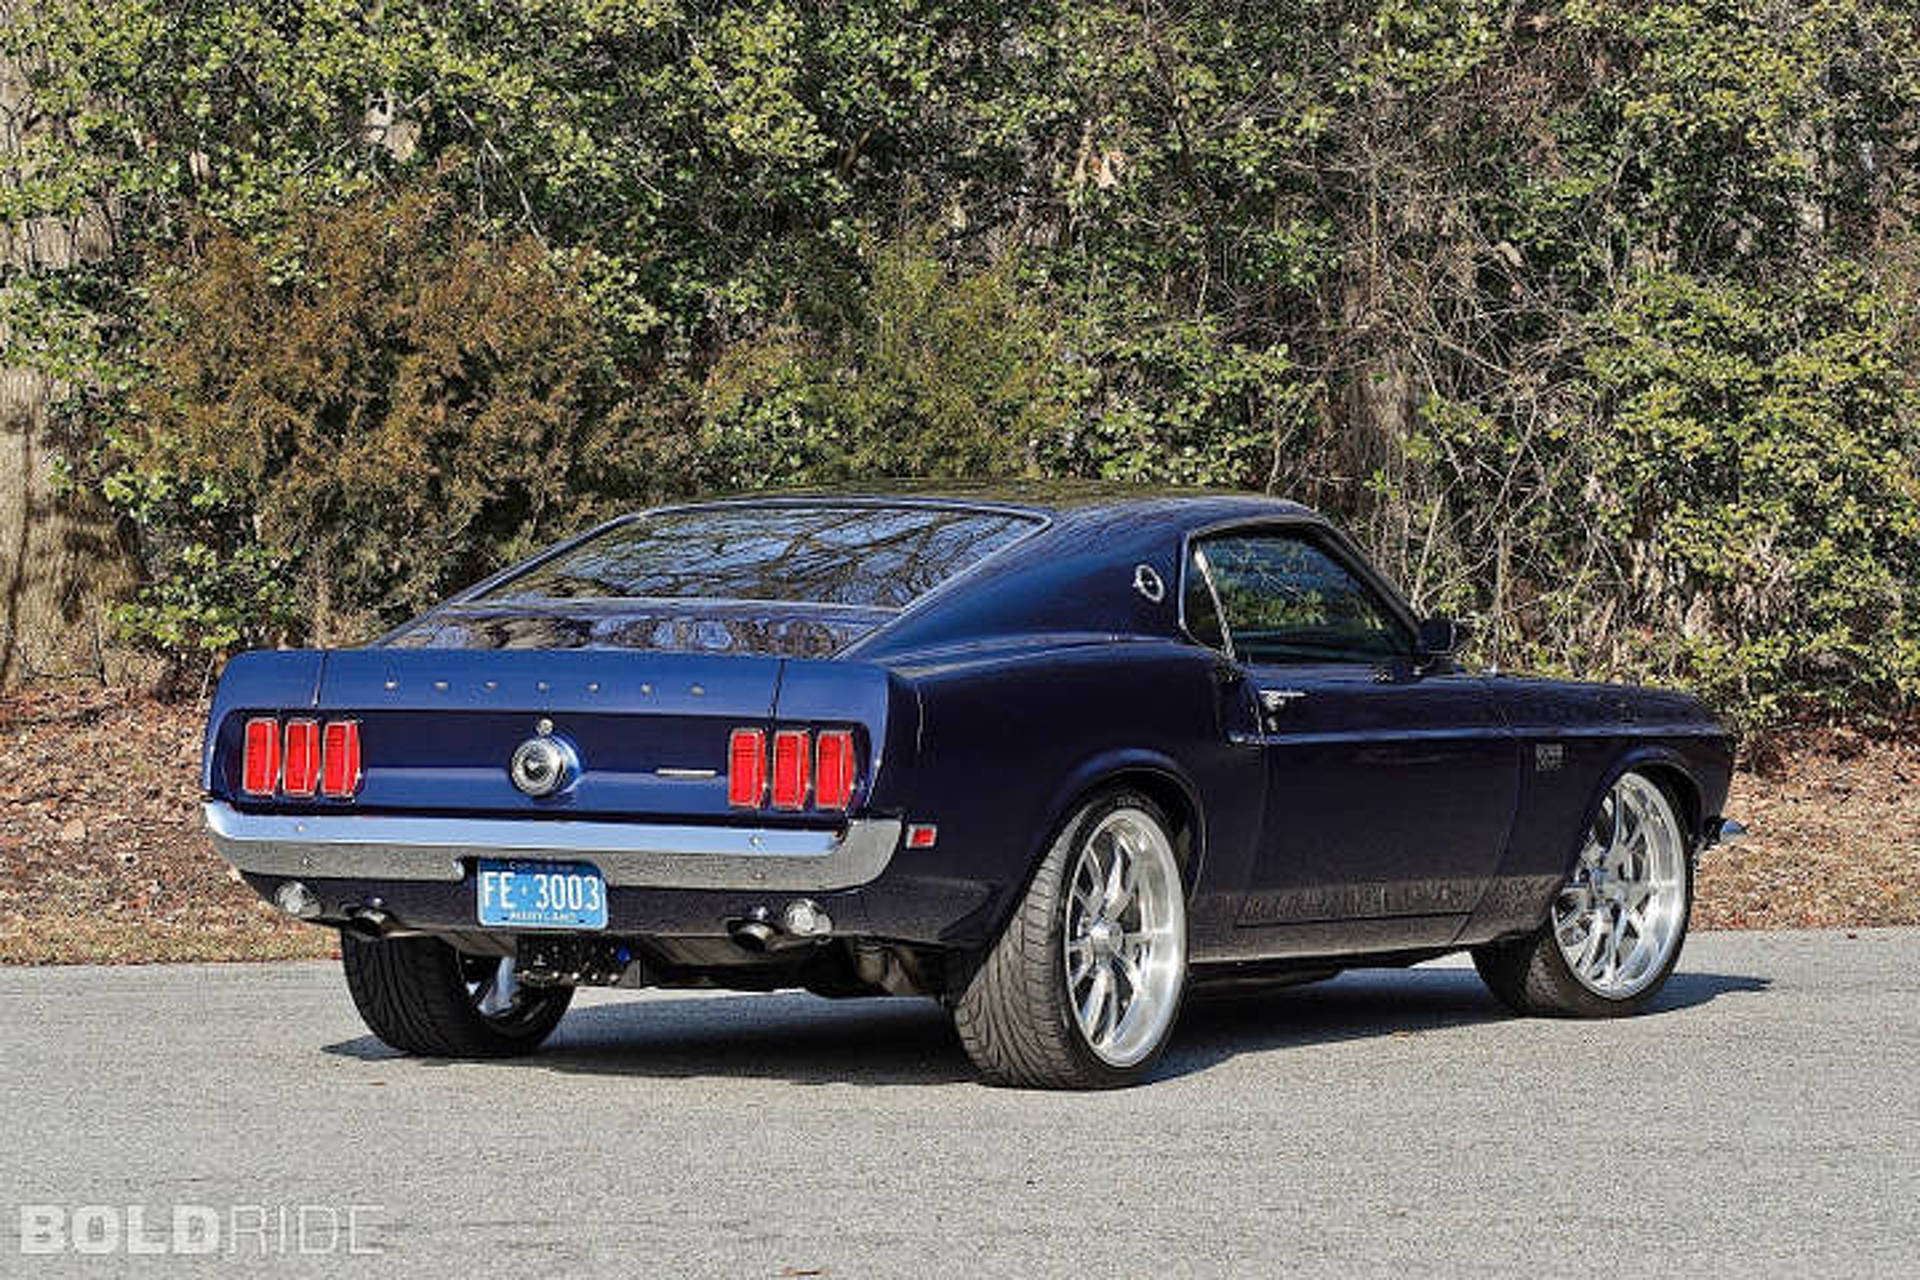 Resto mod ford mustang combines the best of old and new